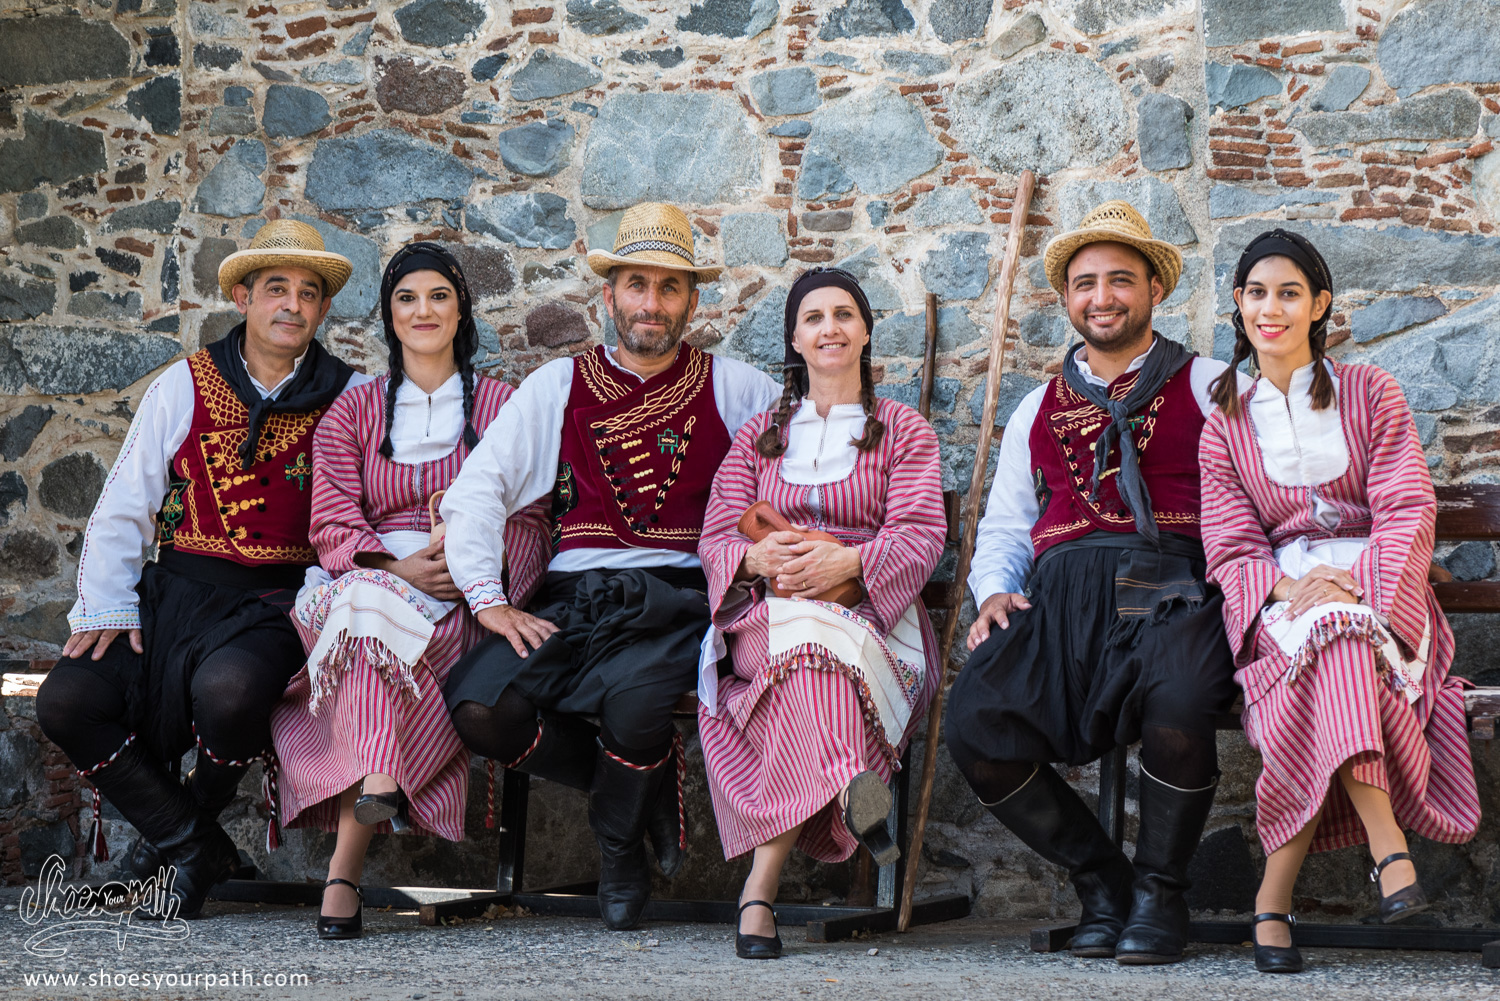 Couples of dancers in their traditional outfits for the apple festival of Kyperounta - Cyprus